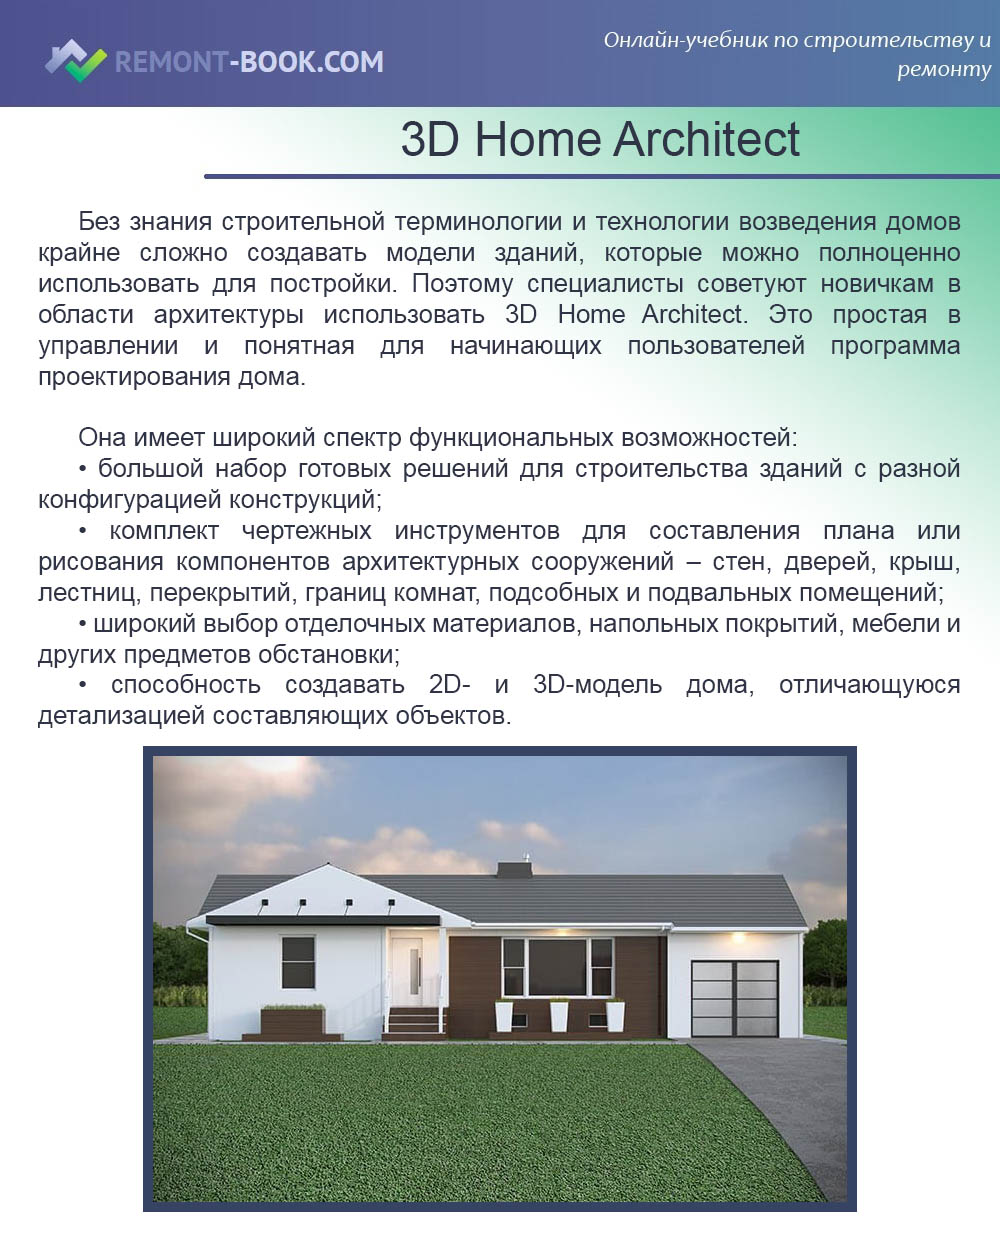 3D Home Architect